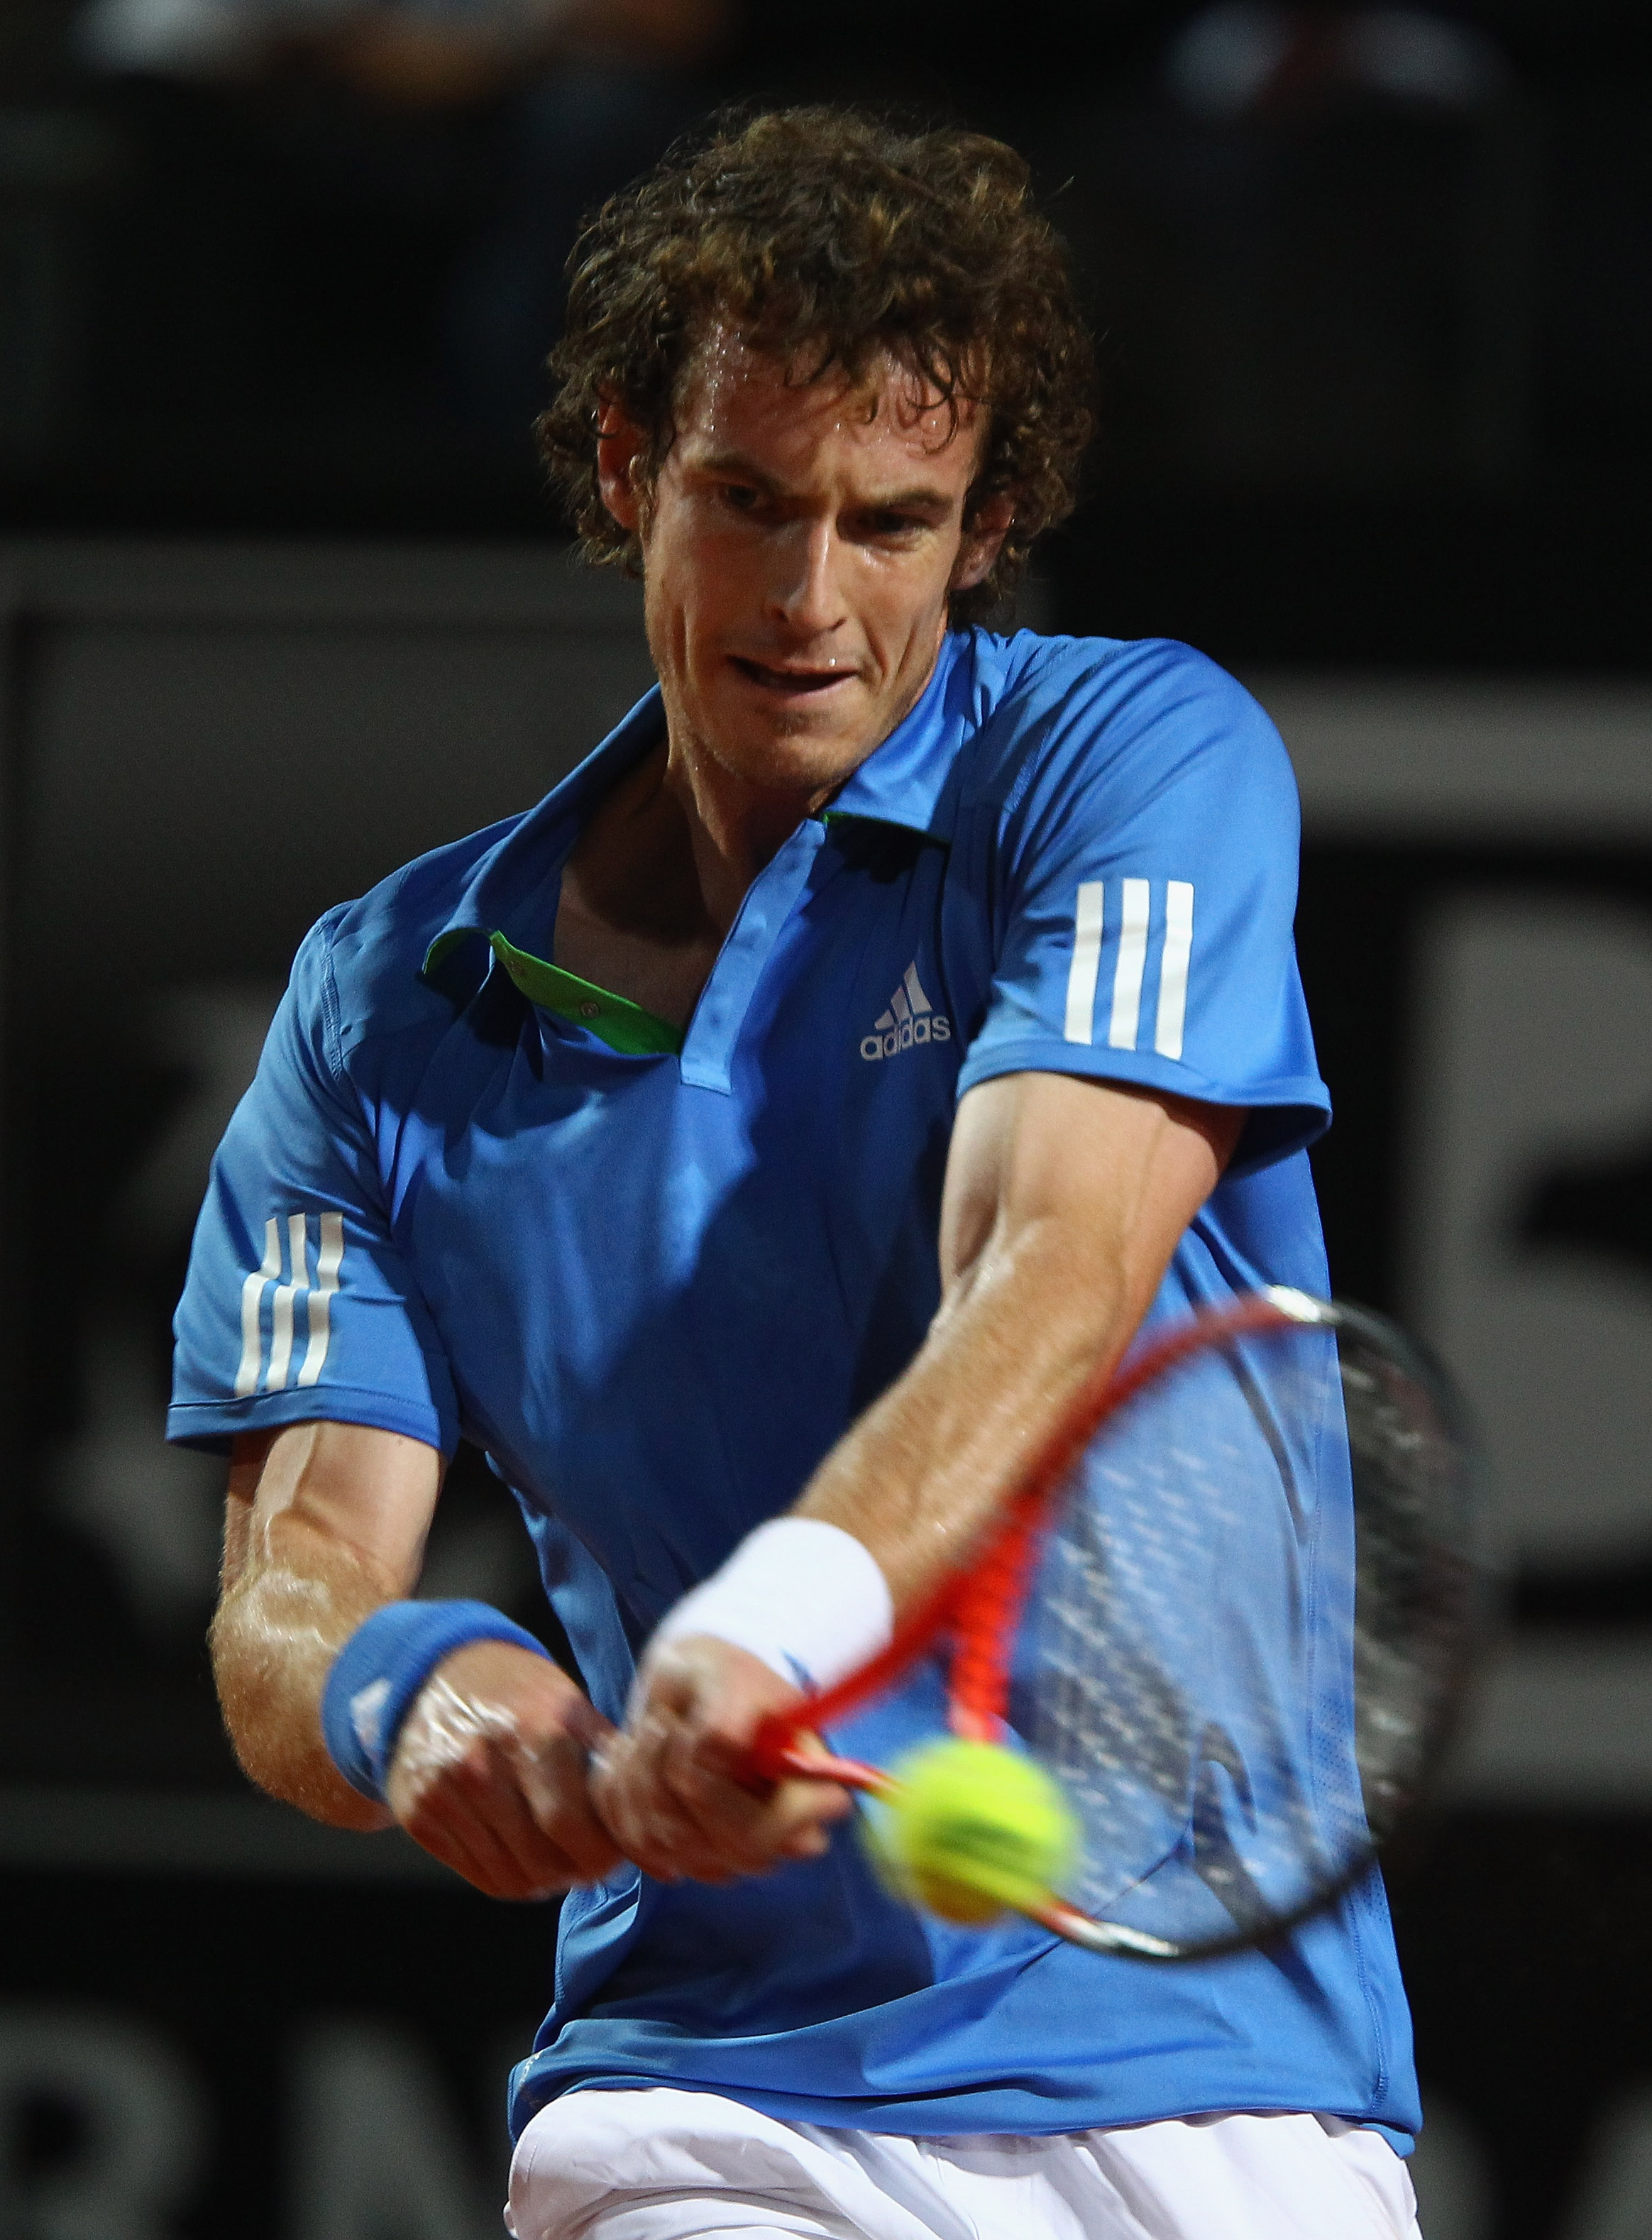 ROME, ITALY - MAY 10: Andy Murray of Great Britain plays a back hand during his second round match against Xavier Malisse of Belgium during day three of the Internazoinali BNL D'Italia at the Foro Italico Tennis Centre on May 10, 2011 in Rome, Italy.  (Ph